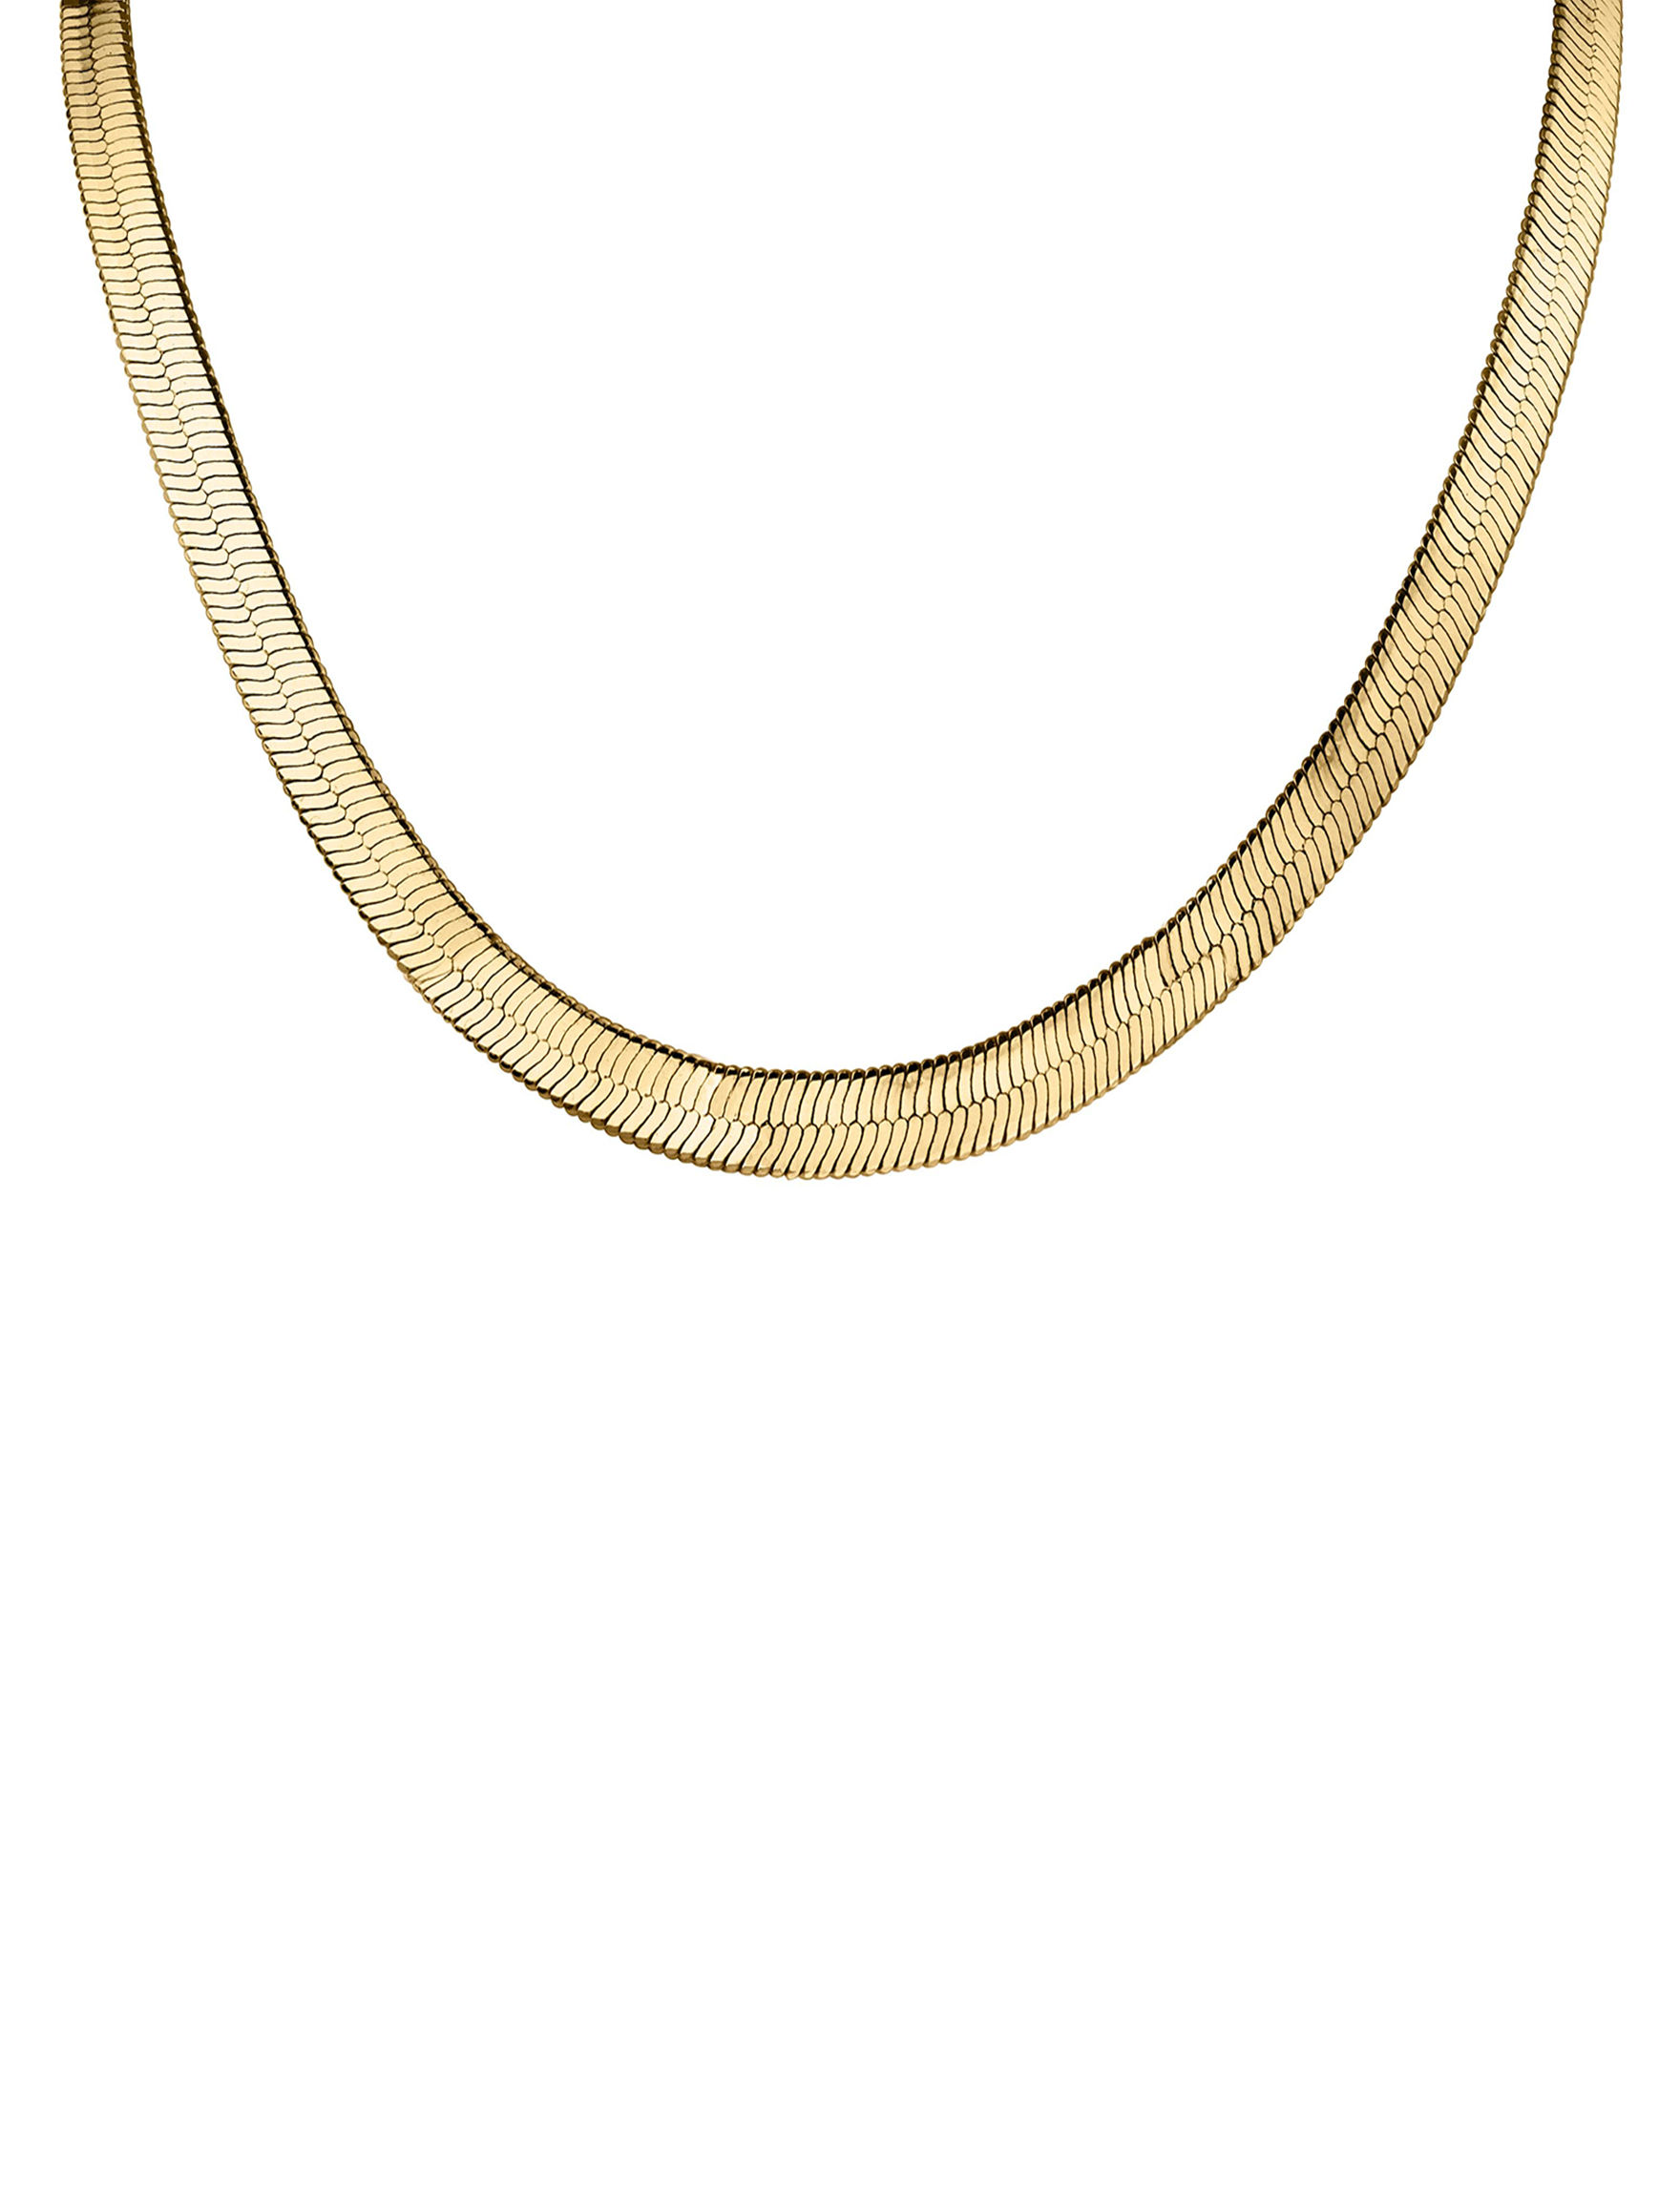 Wearable Art Gold Necklaces & Pendants Fashion Jewelry